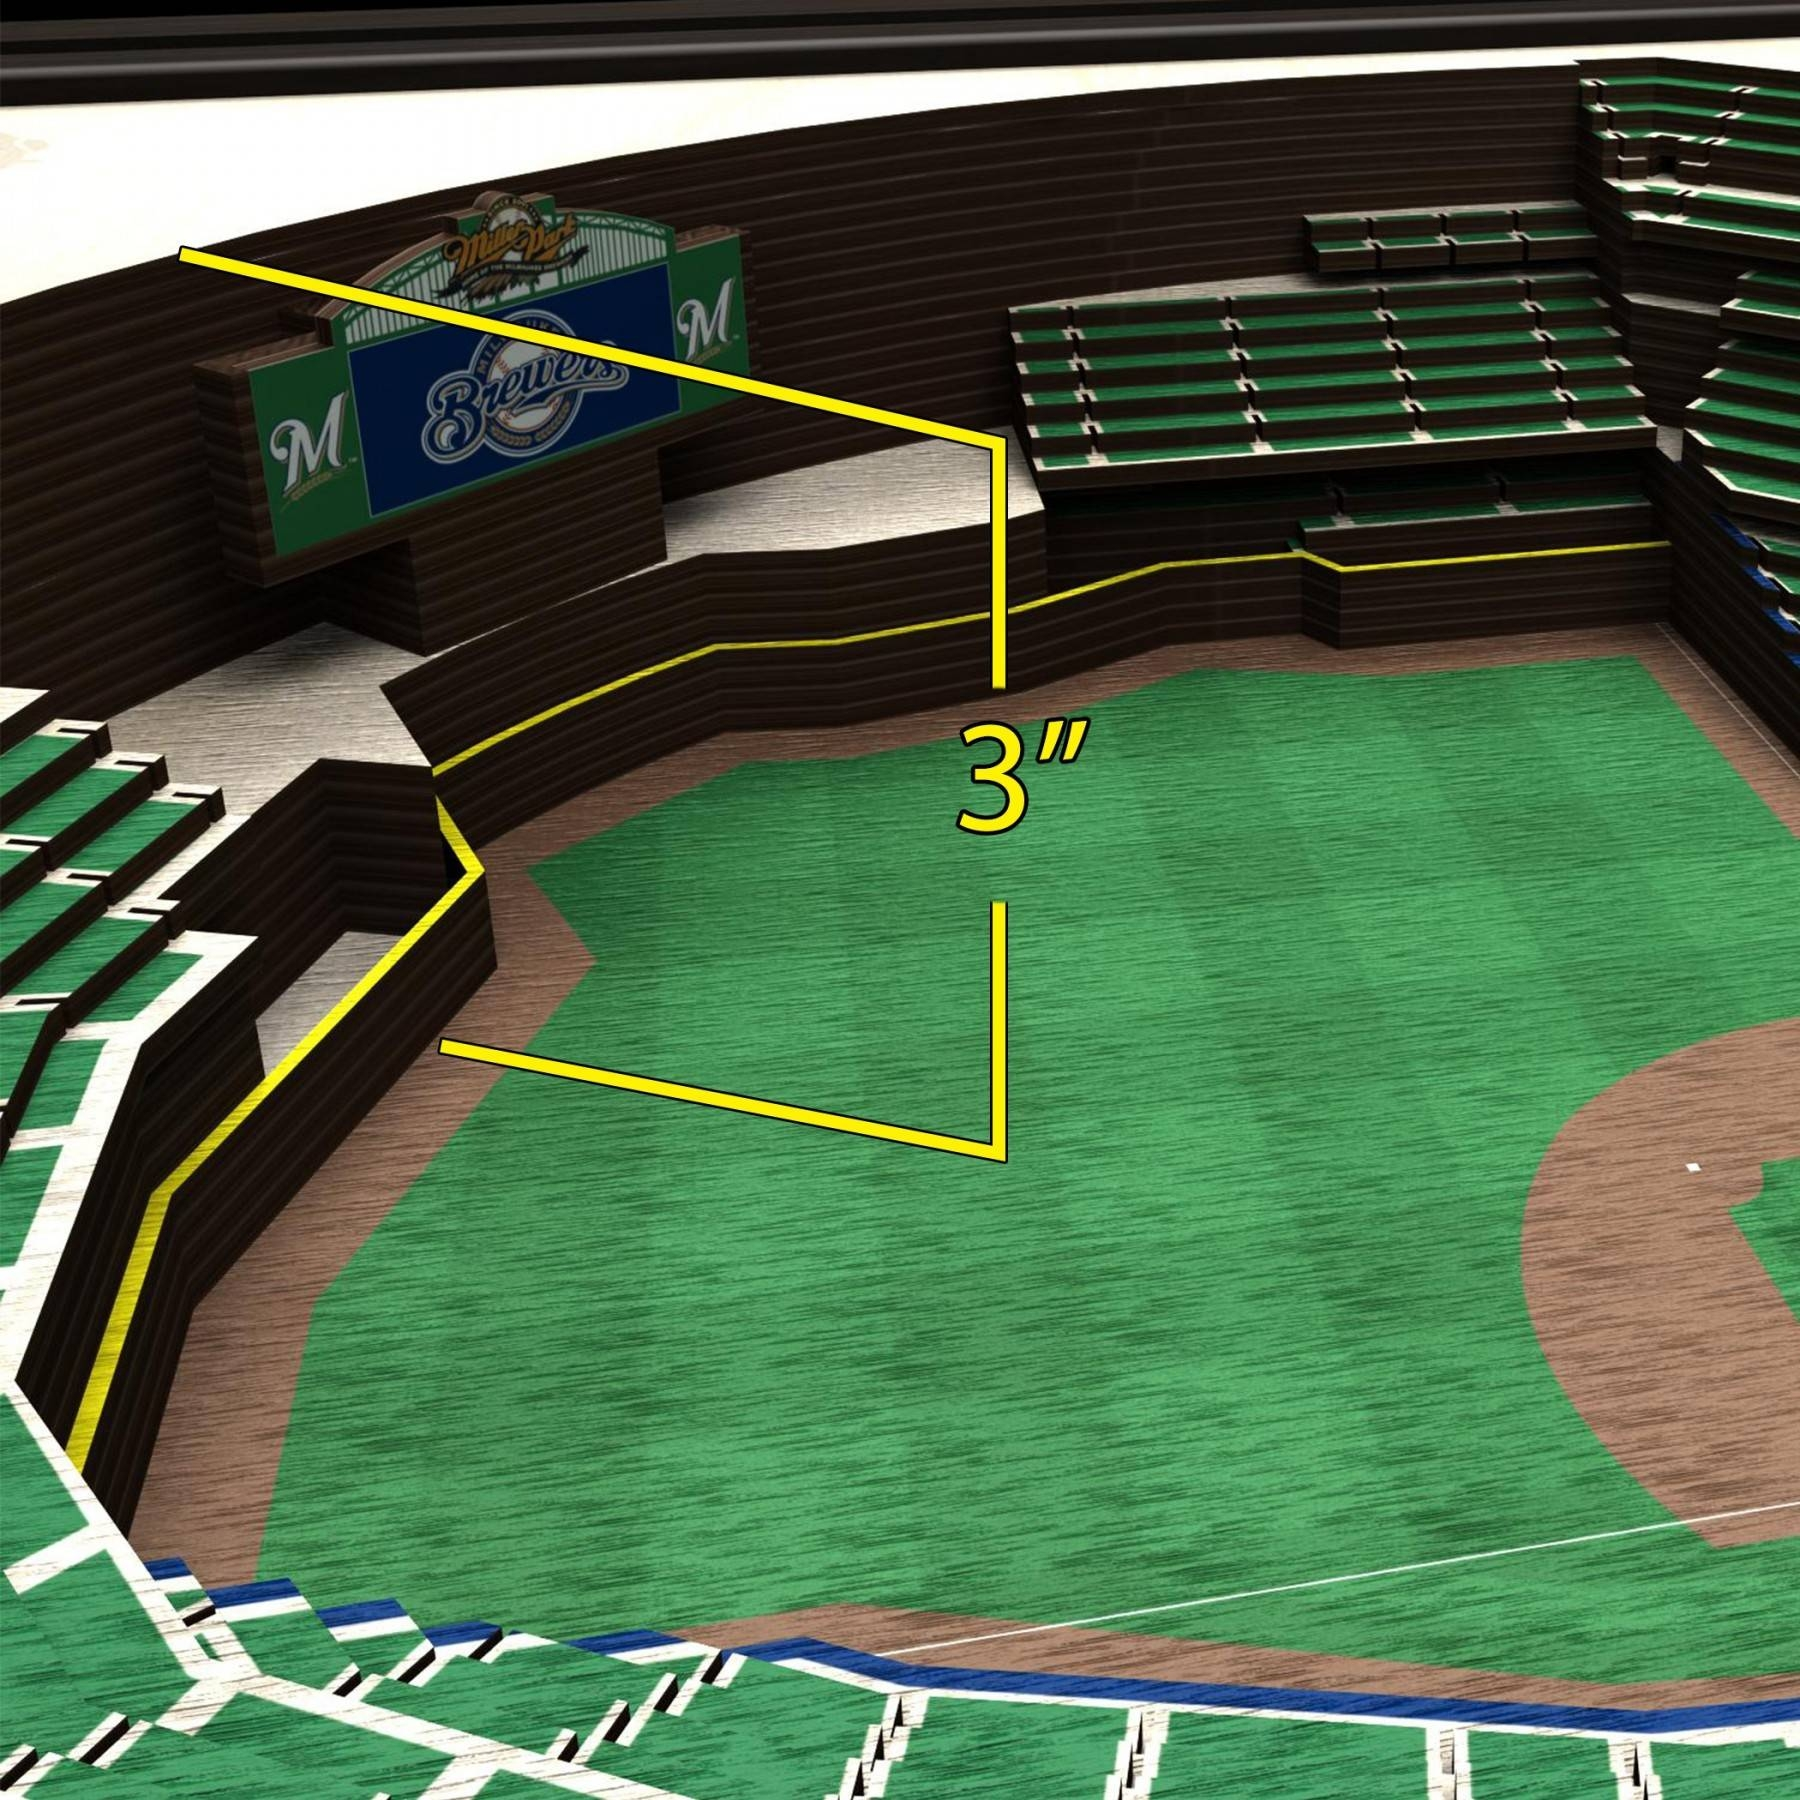 Milwaukee Brewers Stadiumview Wall Art – Miller Park 3 D Within Best And Newest Baseball 3D Wall Art (View 19 of 20)